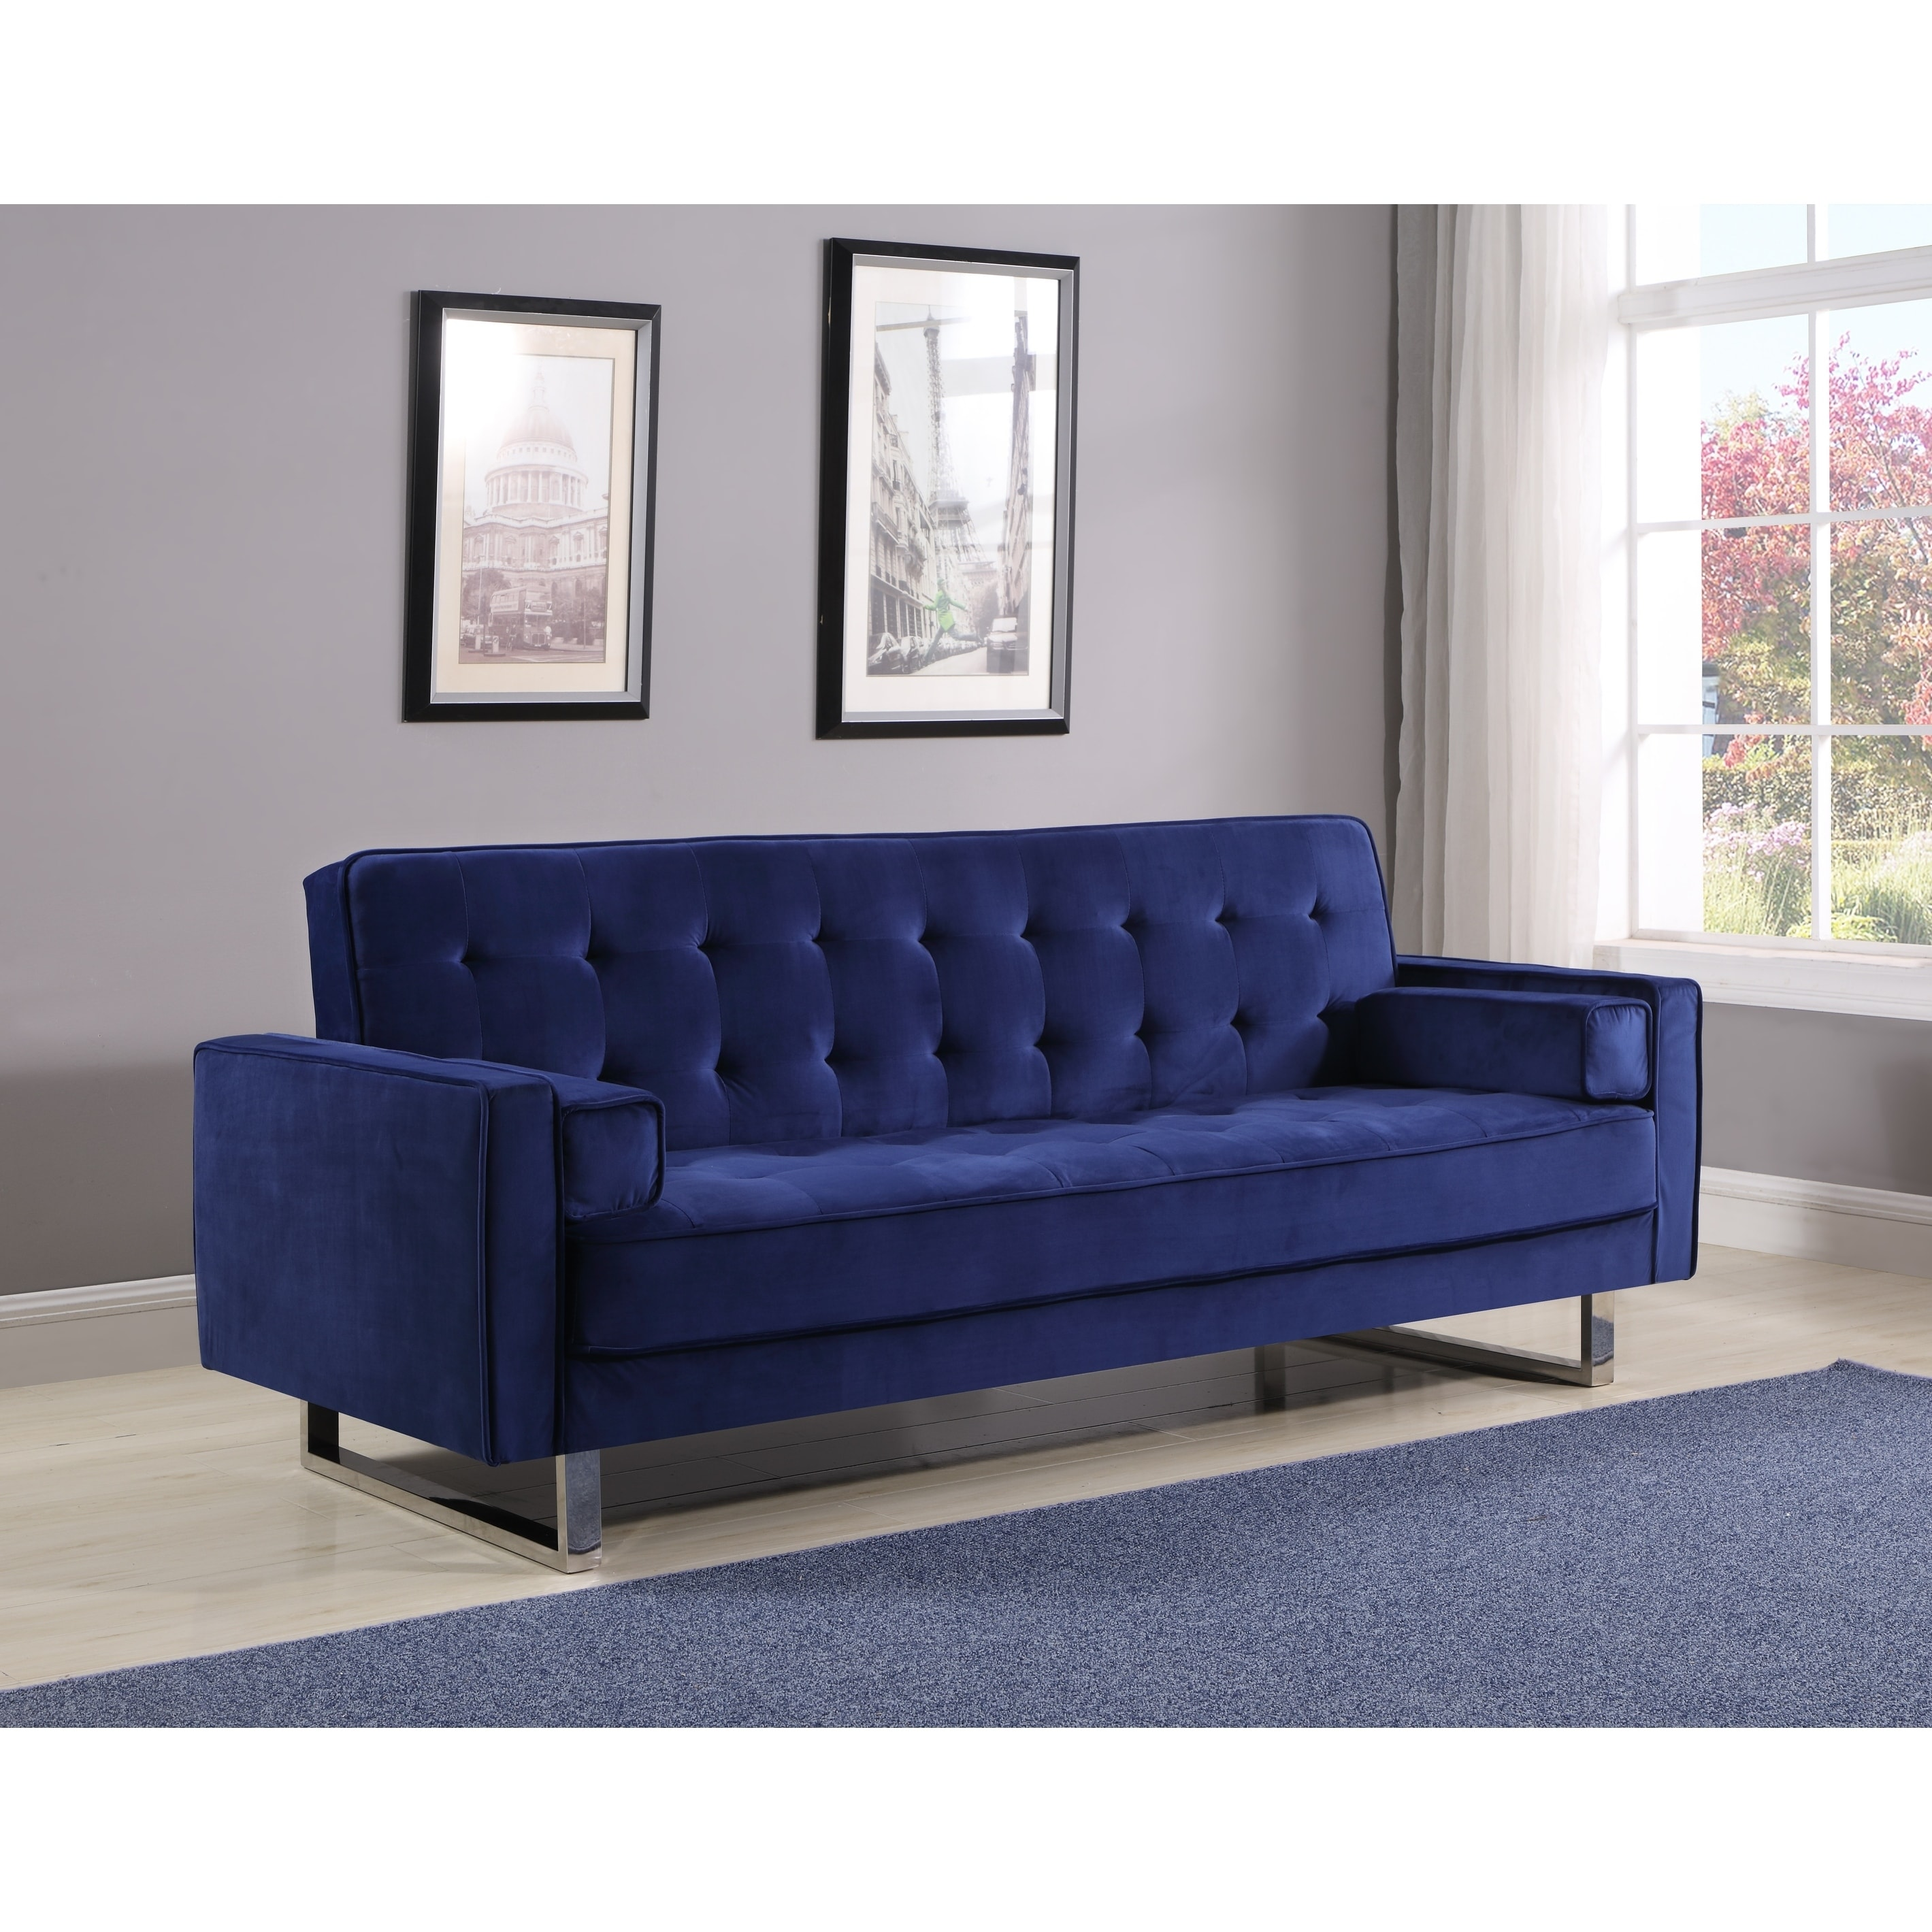 Blue Sofas Couches Online At Our Best Living Room Furniture Deals